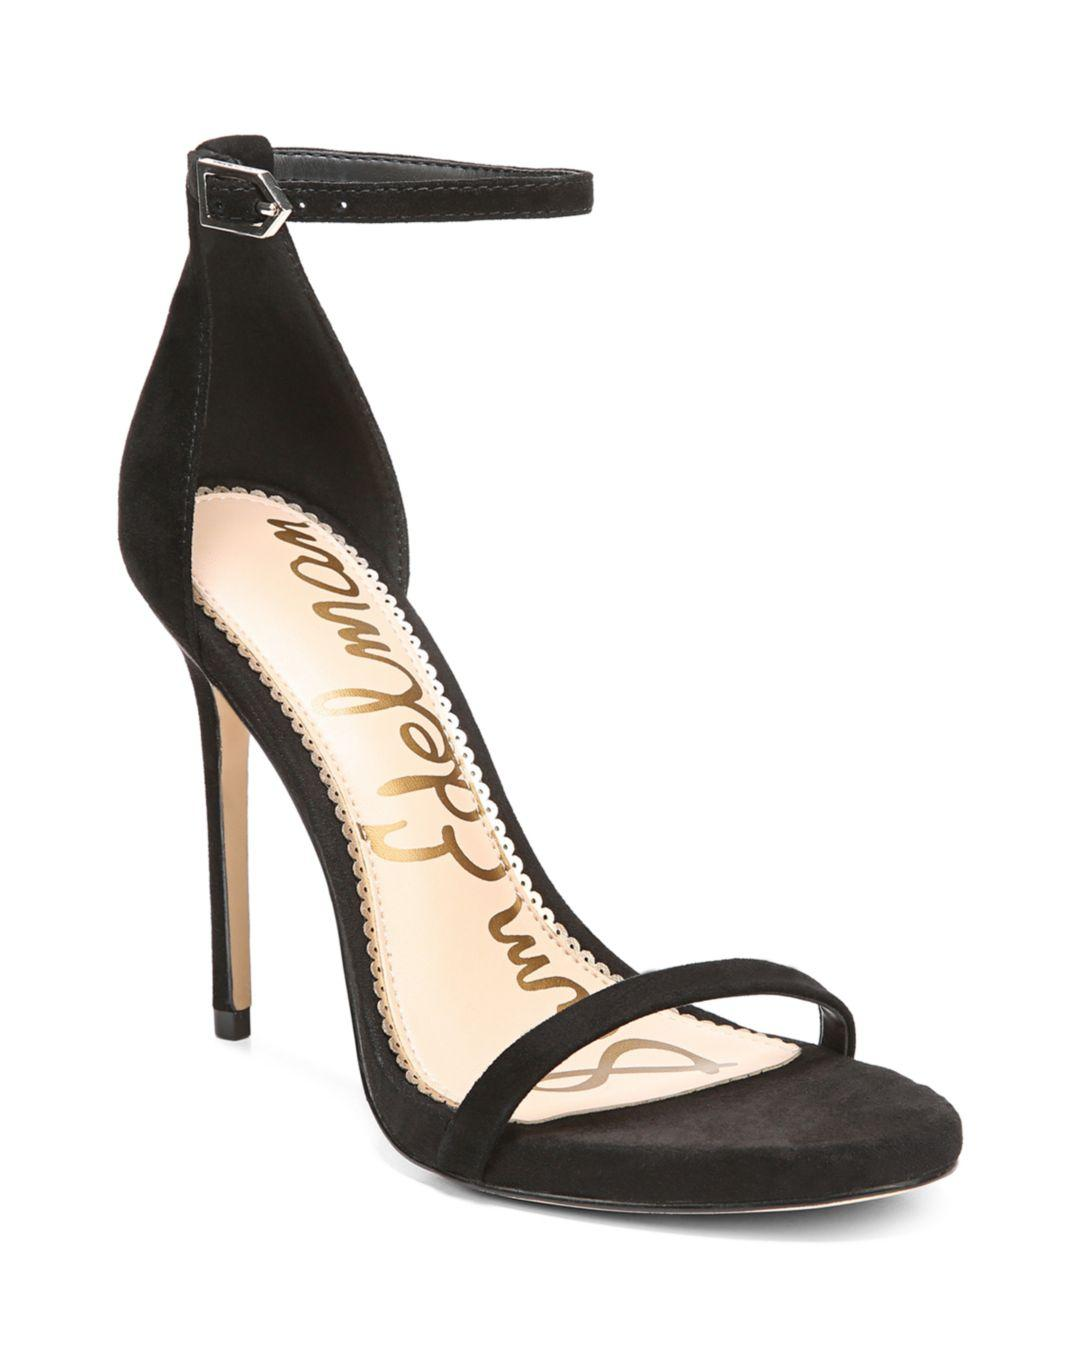 33998223f1f2 Lyst - Sam Edelman Ariella Ankle Strap Sandal in Black - Save 67%